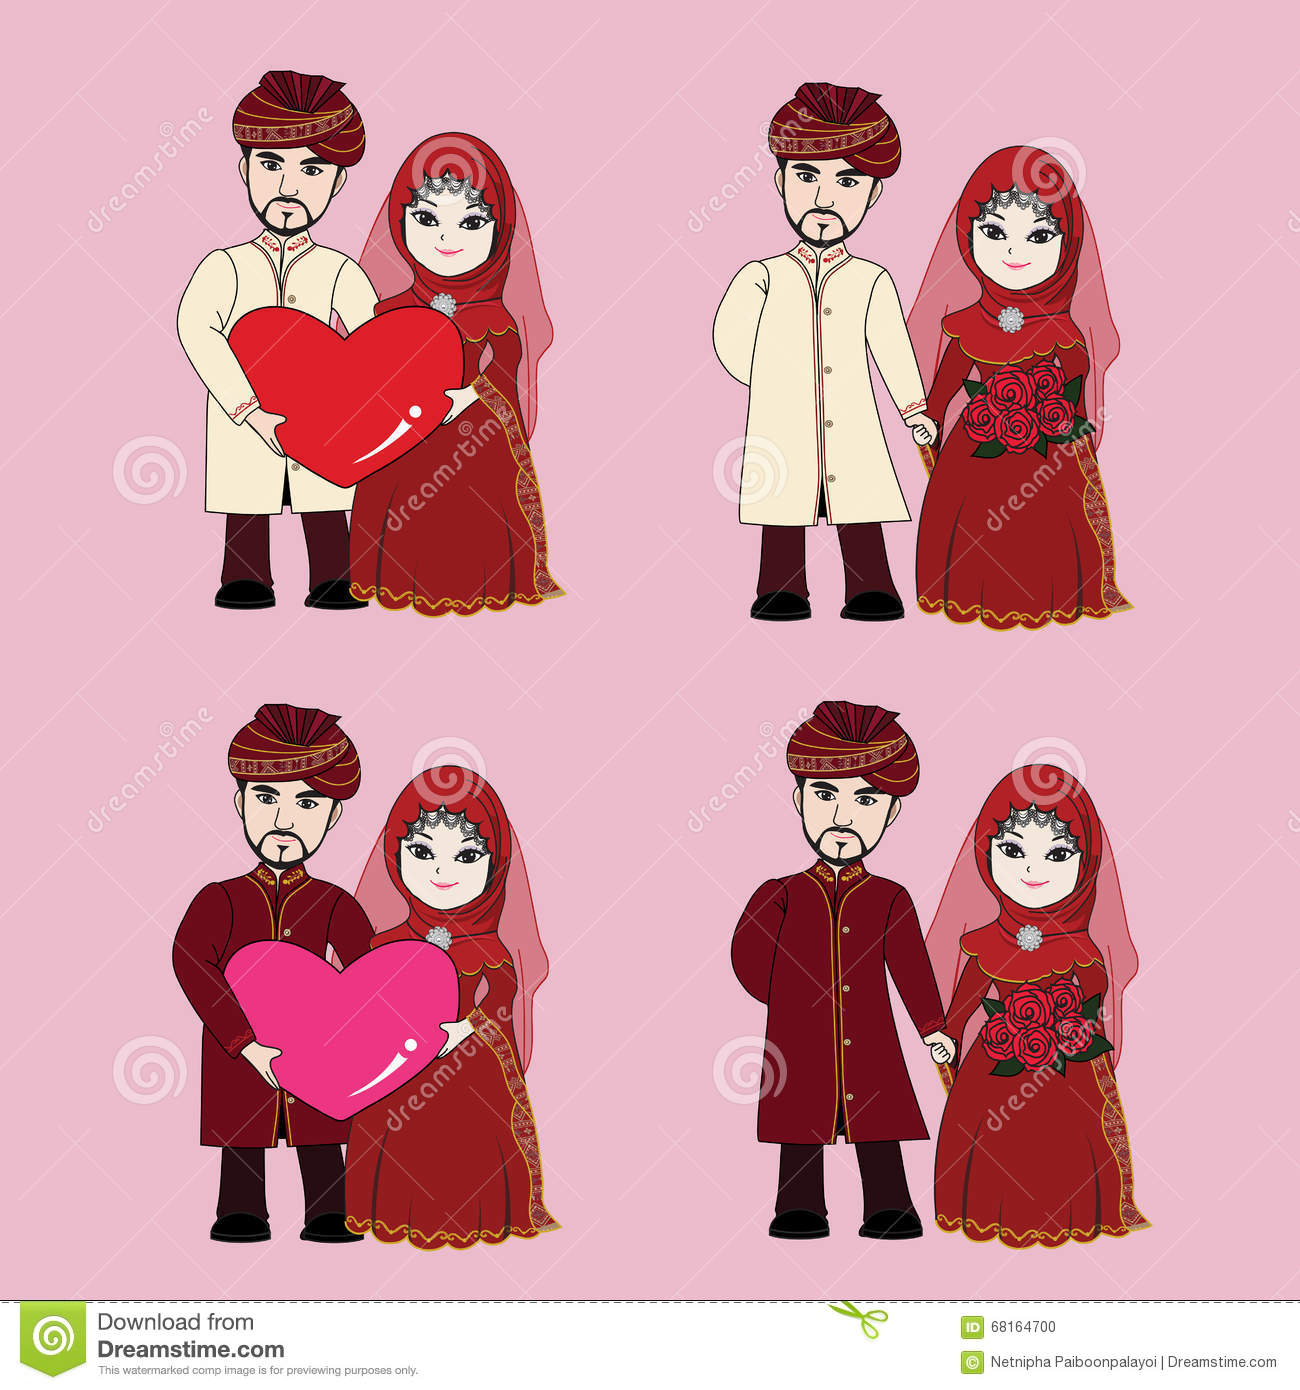 Muslim Wedding Couple Cartoon Illustration 68164700 Megapixl